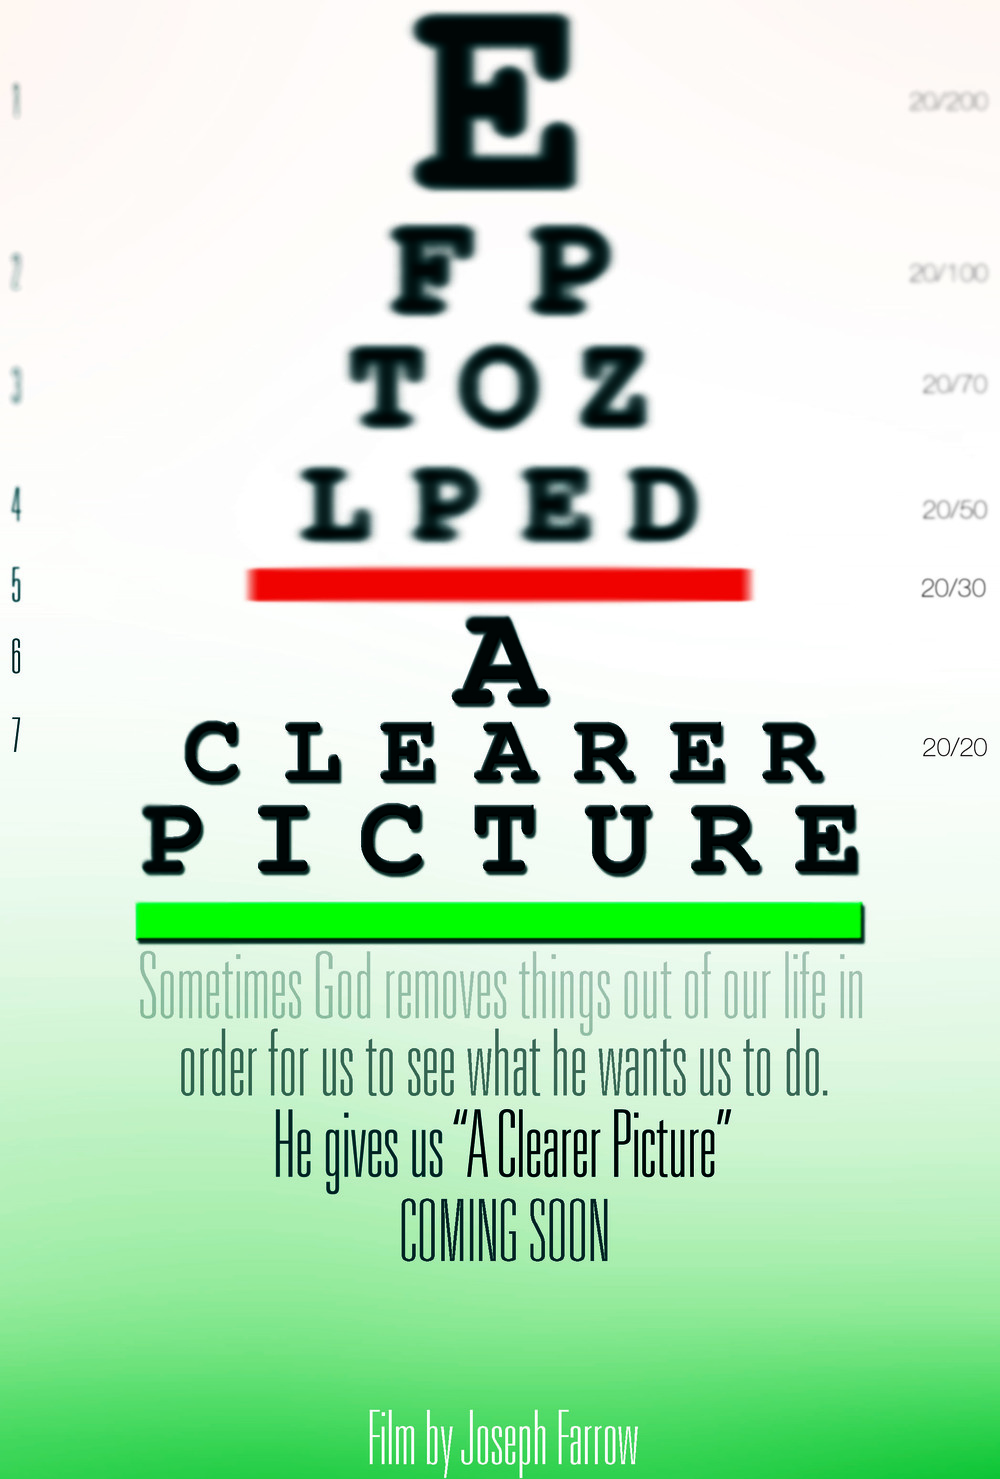 Cleared Vision poster BLUR 1 copy.jpg